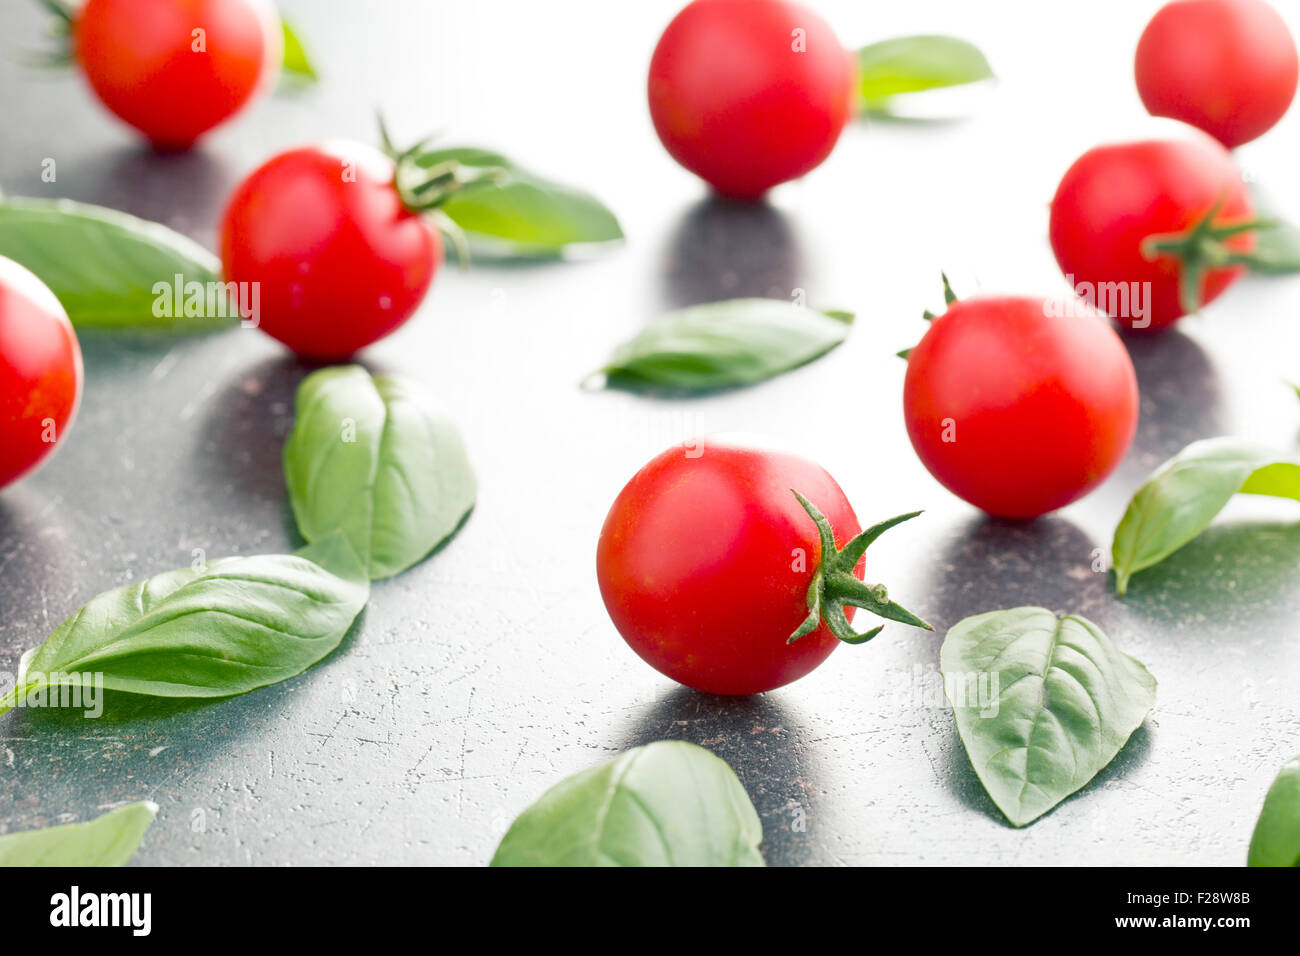 tomatoes and basil leaves on kitchen table - Stock Image